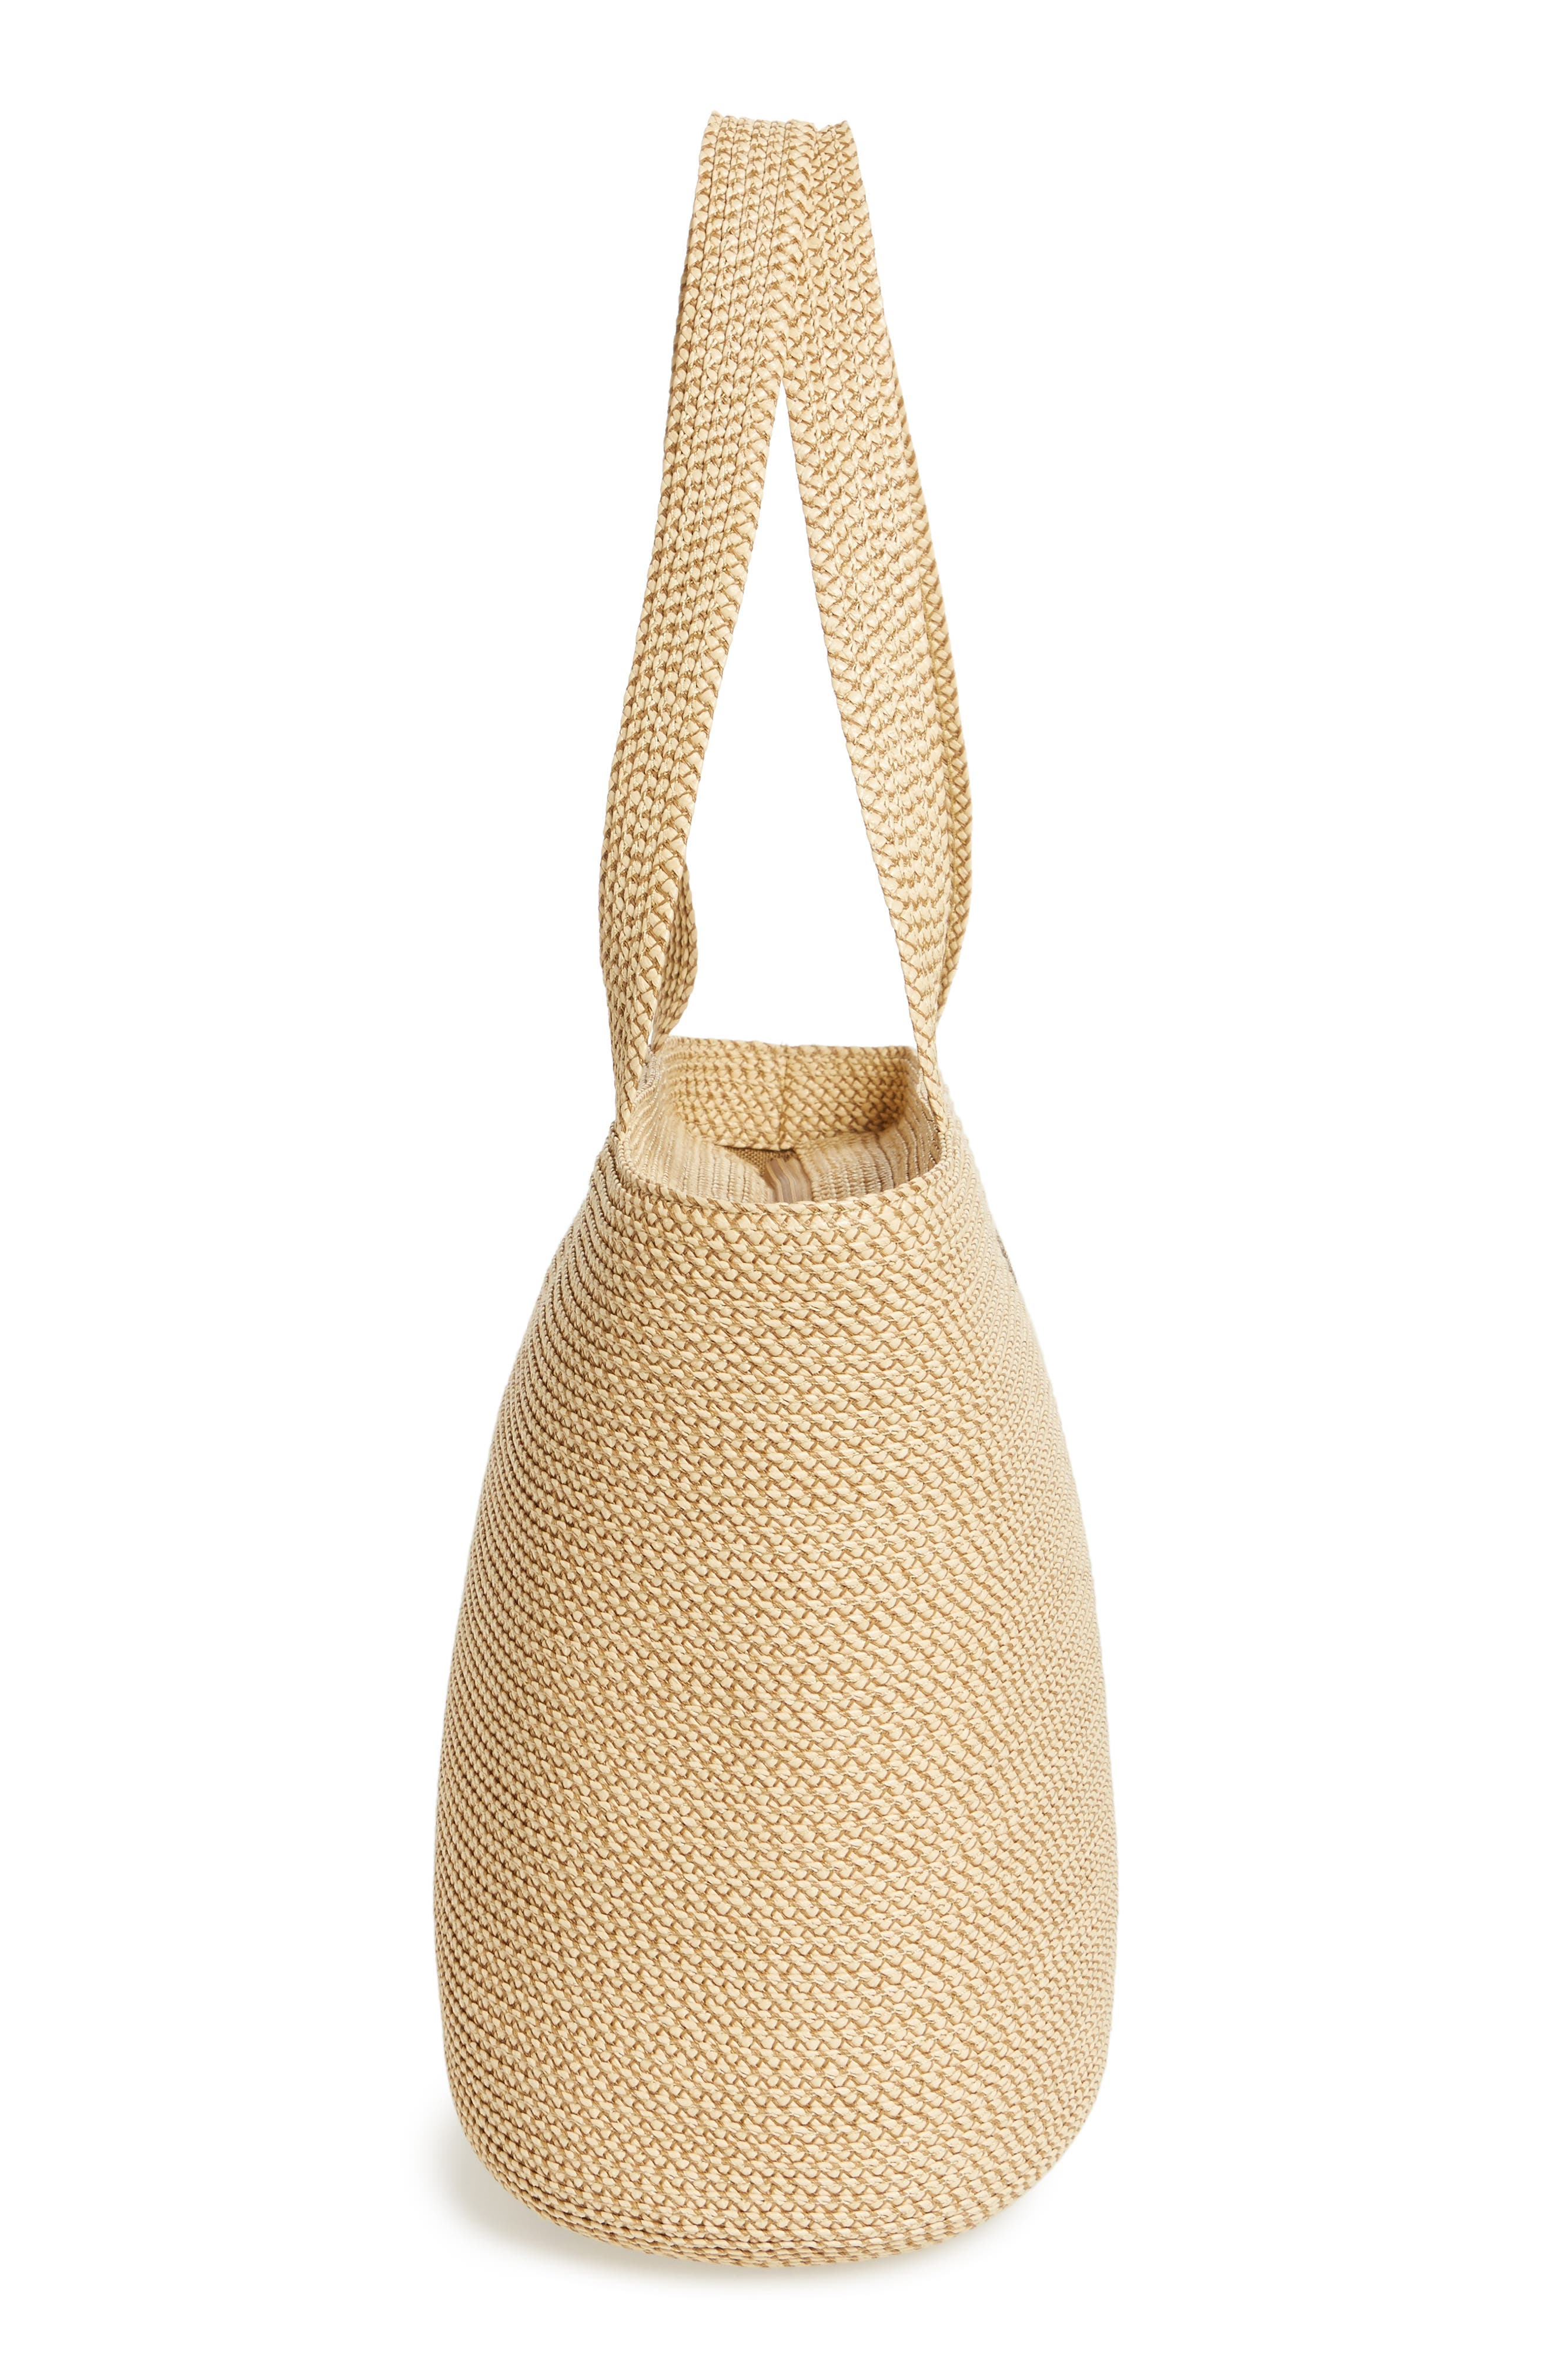 Squishee<sup>®</sup> Tote,                             Alternate thumbnail 5, color,                             PEANUT